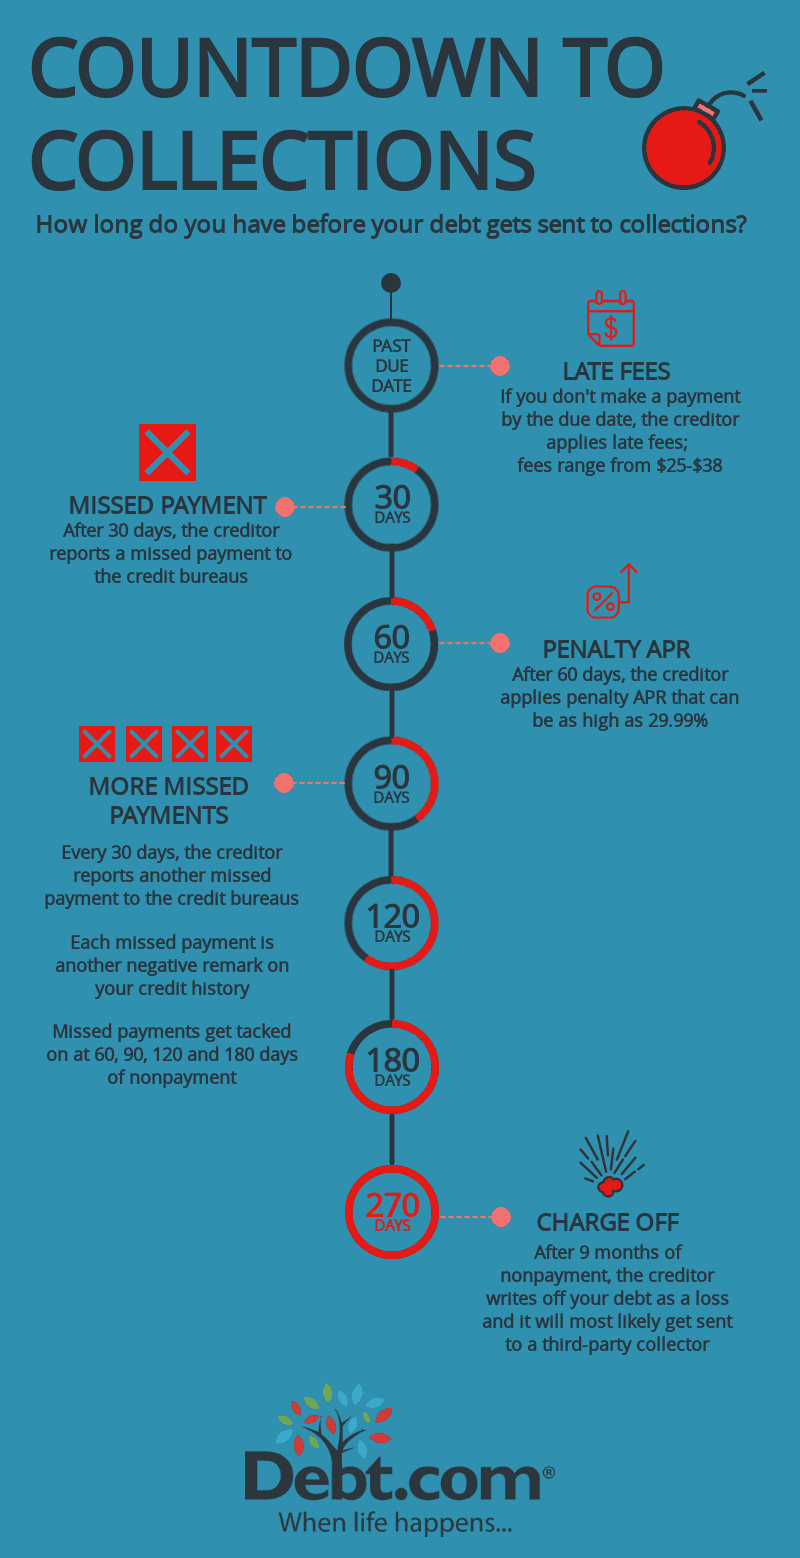 Debt.com infographic showing the timeline from a late payment to charge off